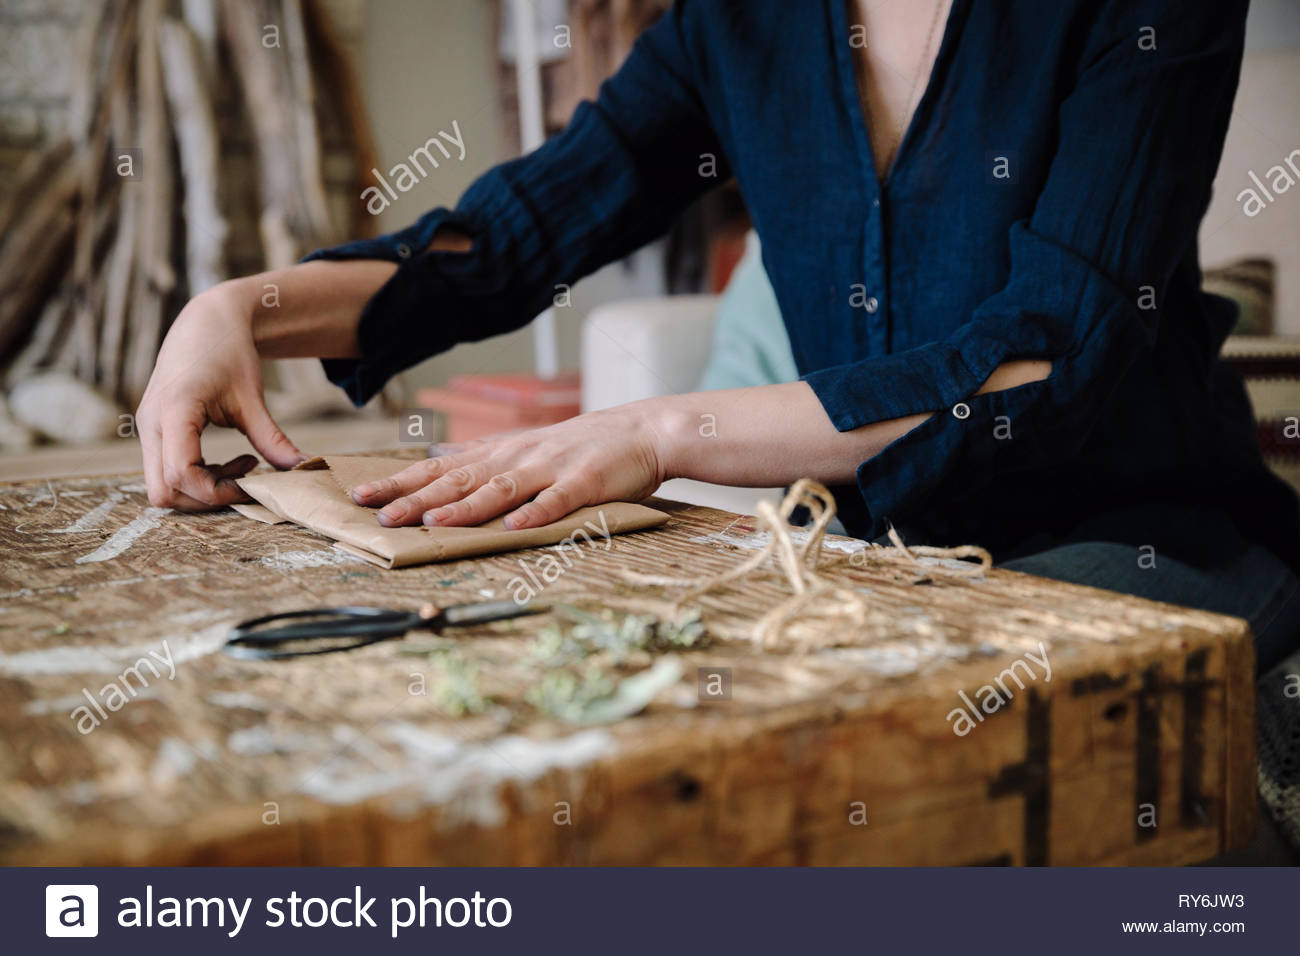 Woman wrapping emballage Photo Stock